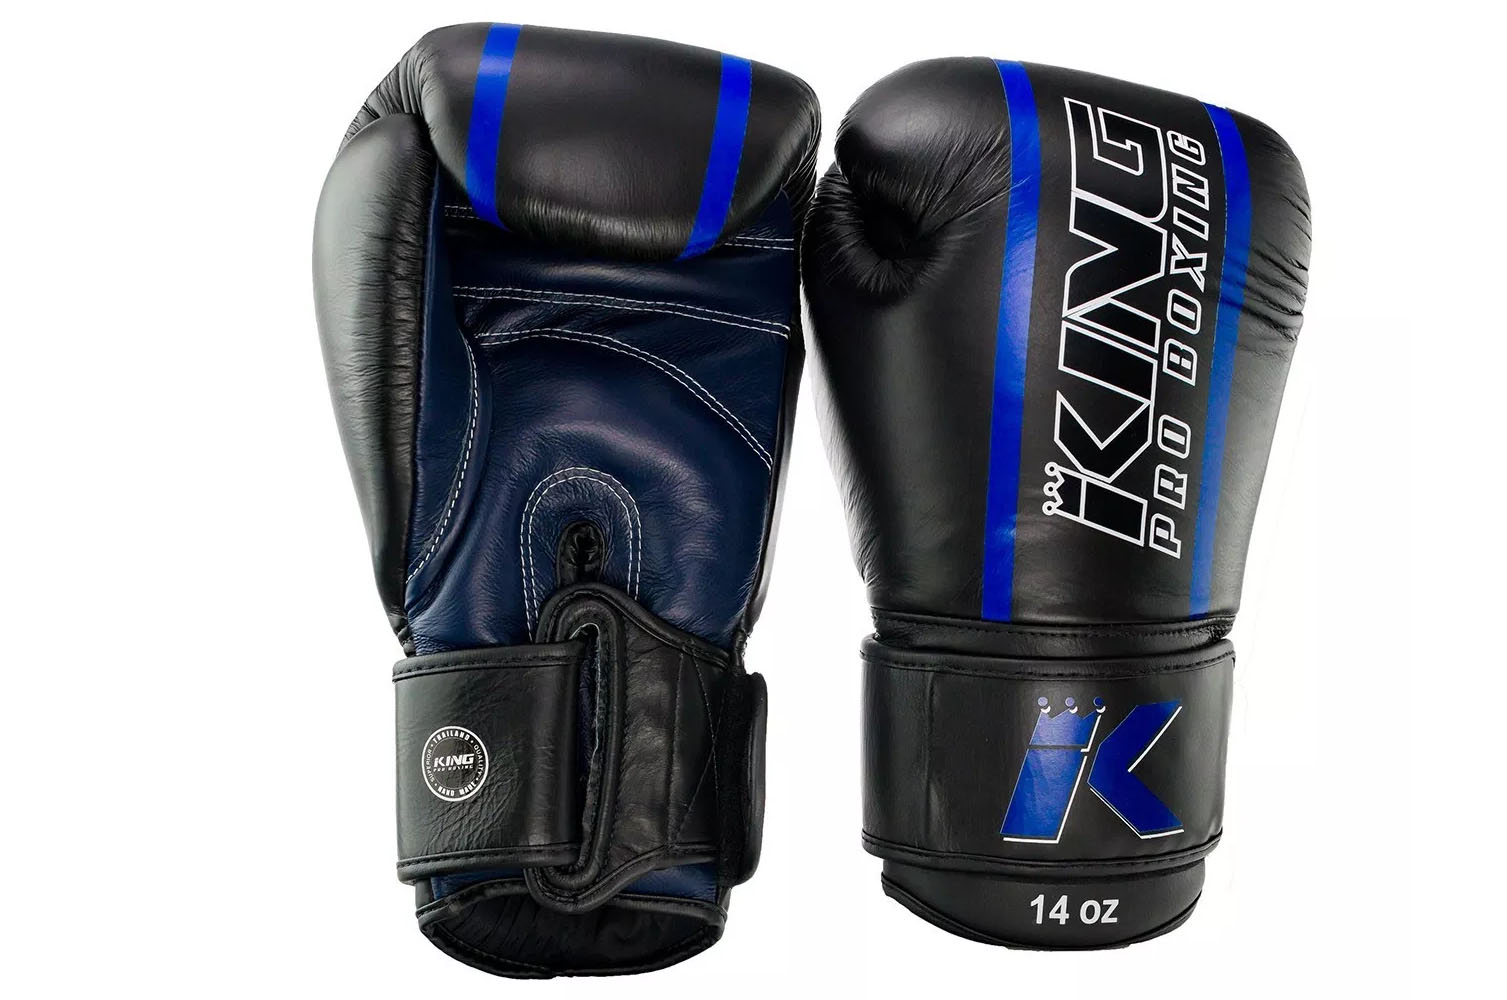 gants de boxe cuir elite king. Black Bedroom Furniture Sets. Home Design Ideas